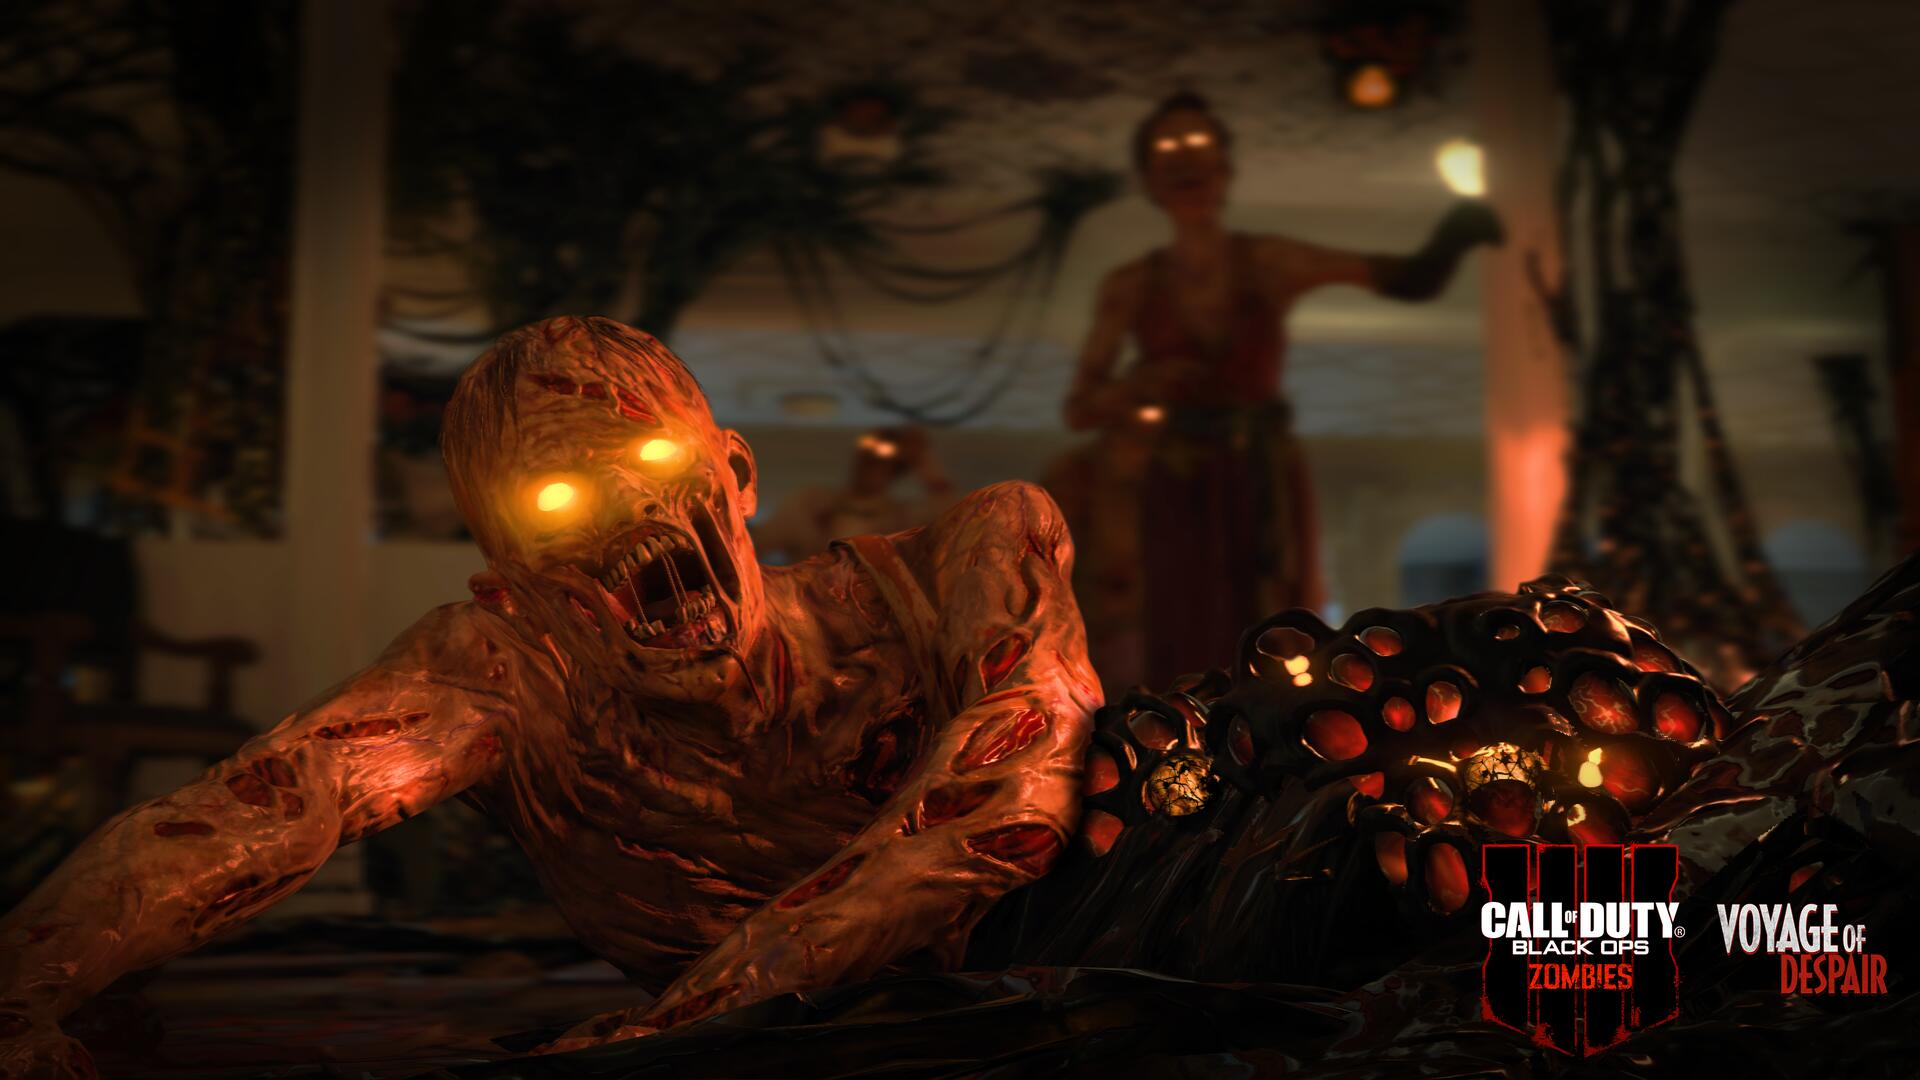 Black Ops 4 Zombies Adds Game of Thrones Actor in Latest Leak